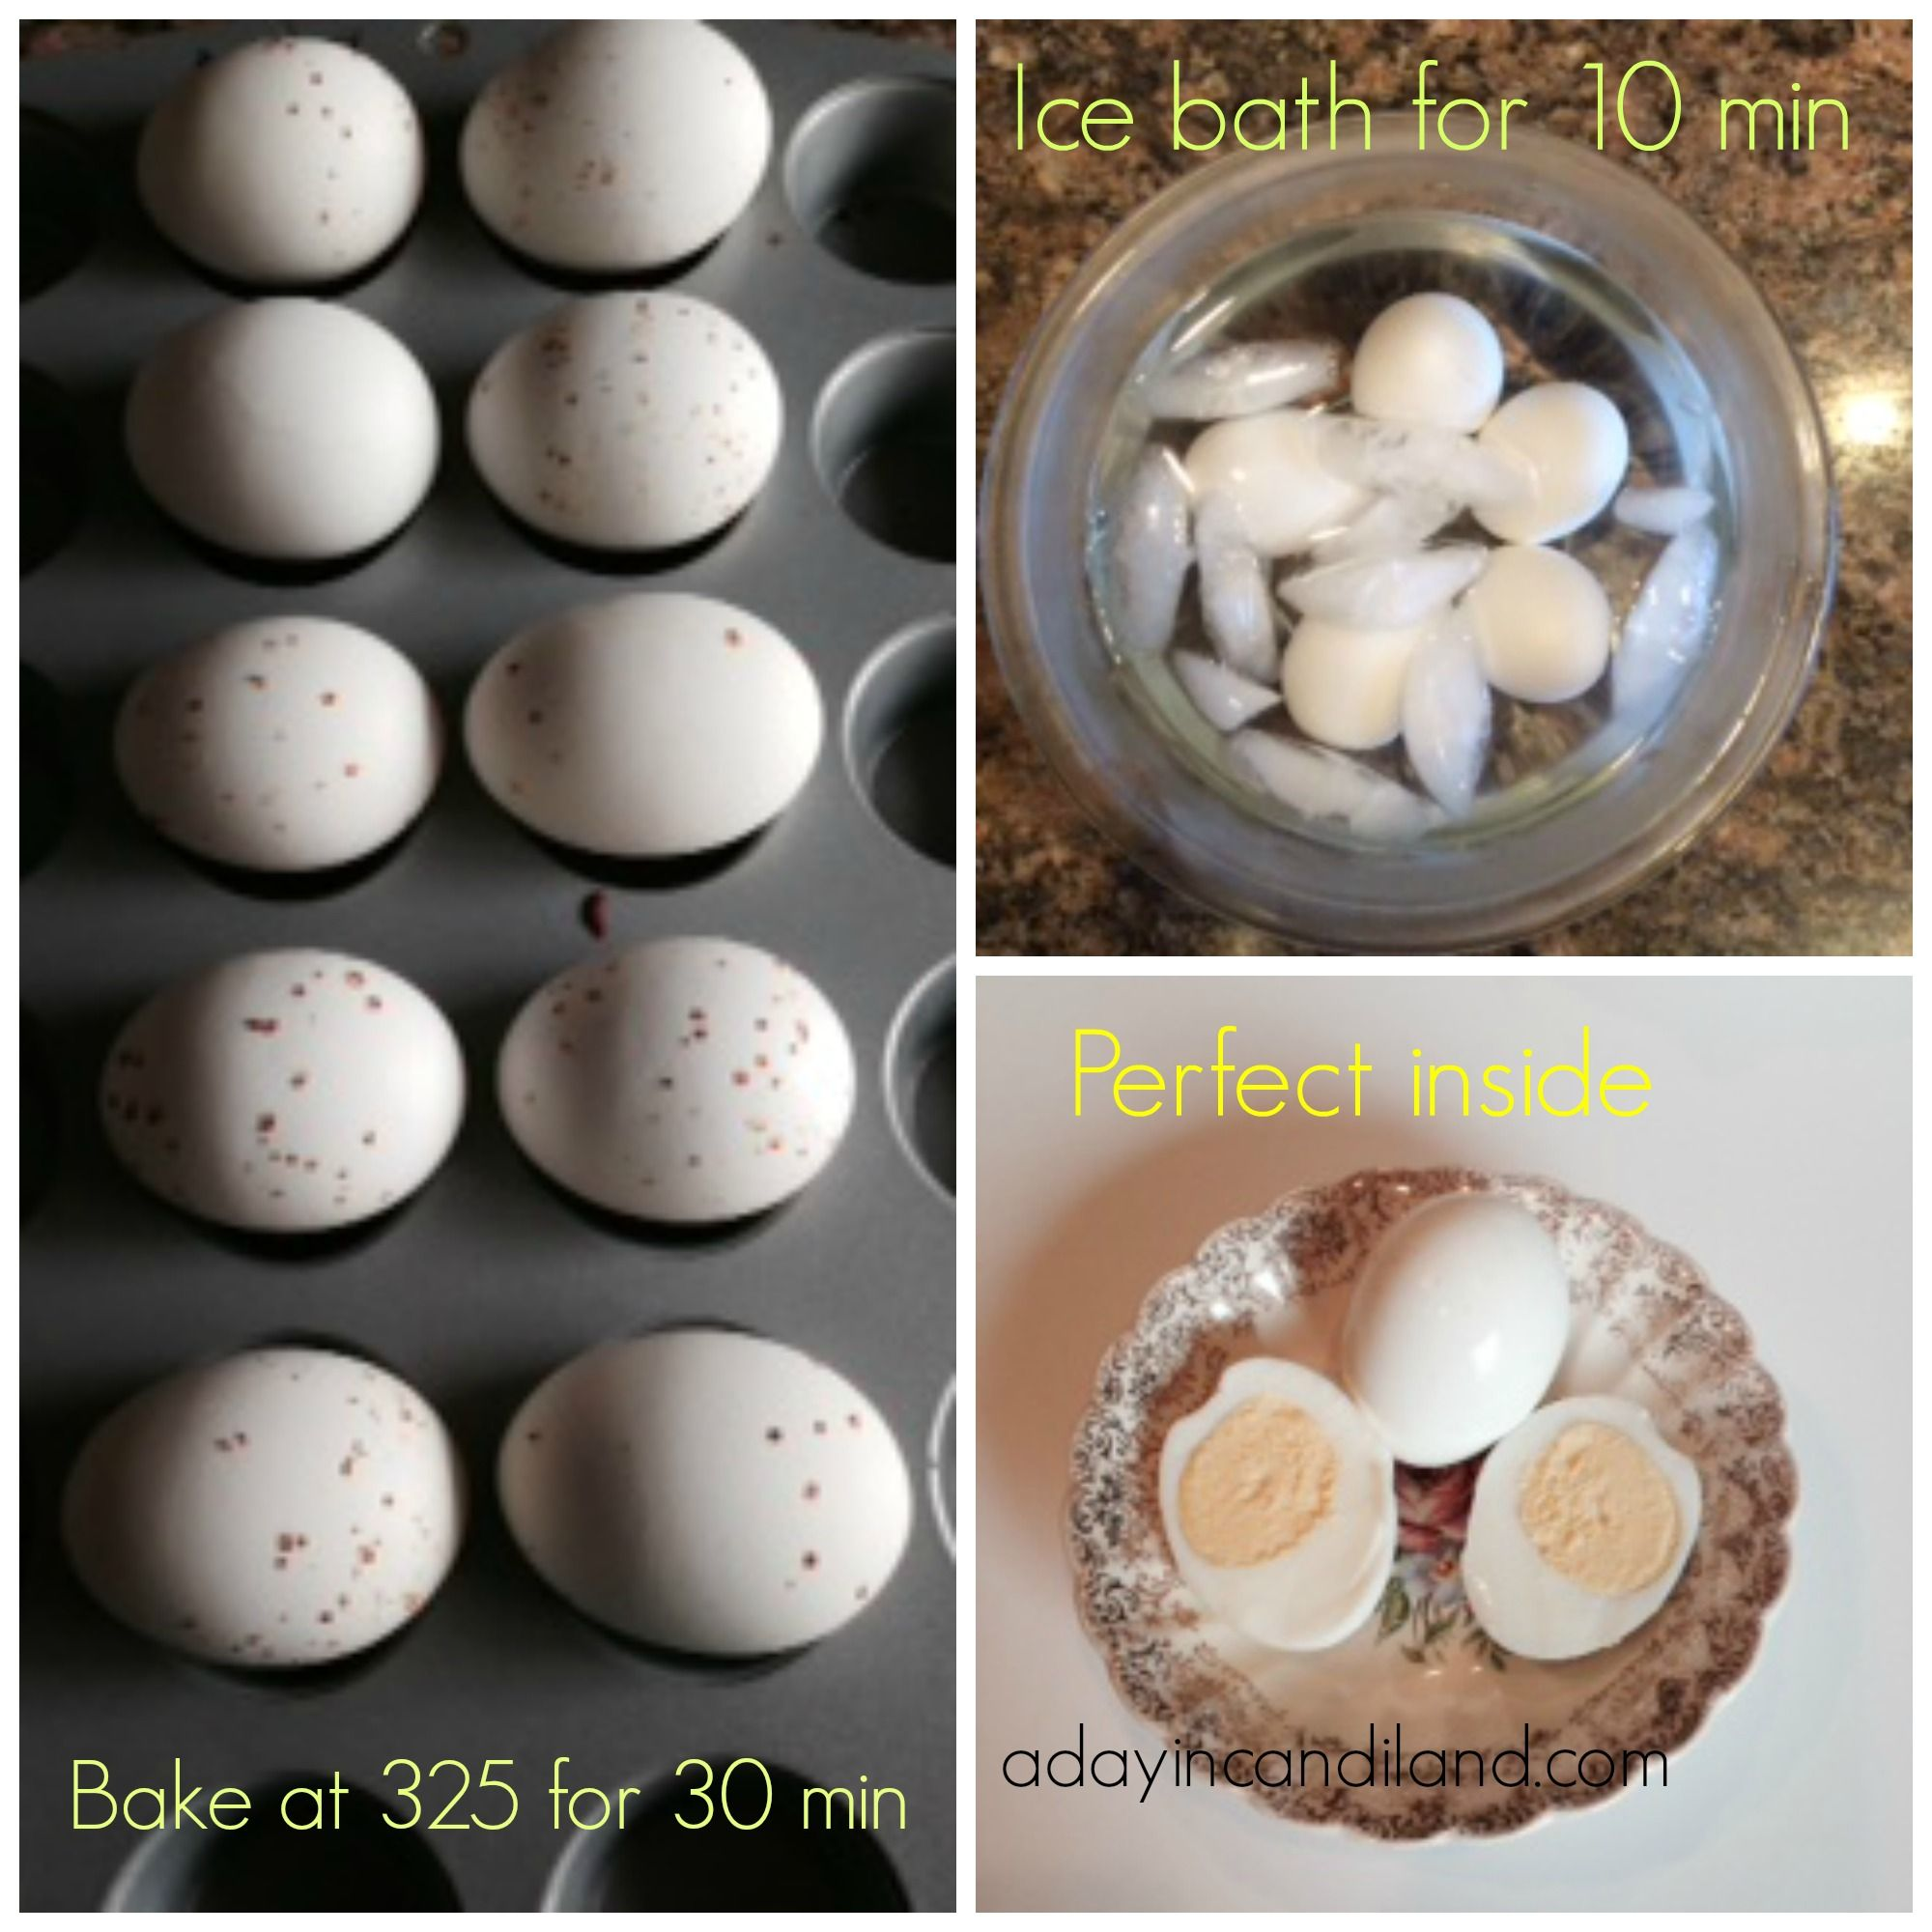 1 Preheat Oven To 325 Degrees F 175 Degrees C 2 Put 1 Egg In Each Of The Muffin Cups 3 Bake In Prehe Baked Hard Boiled Eggs Easy Baking Hard Boiled Eggs